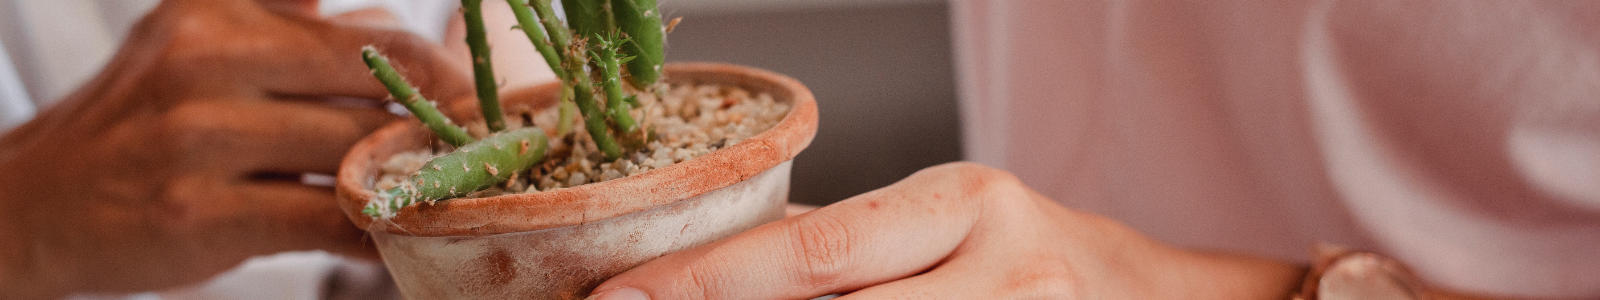 image of a potted succulent being held by hands